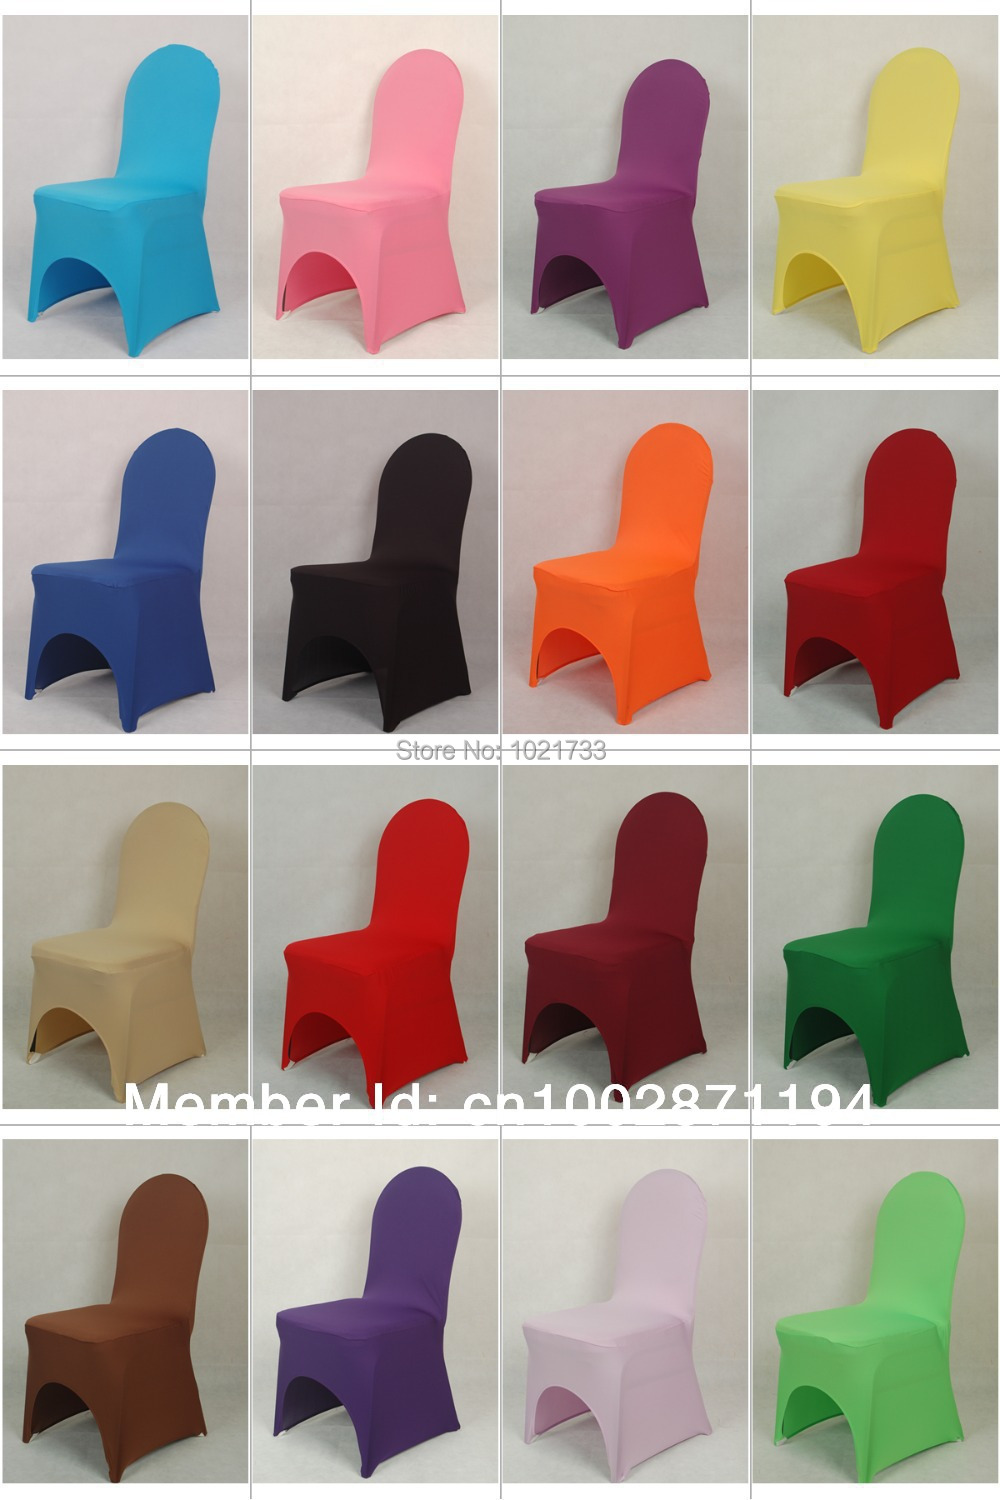 Lycra chair cover,220grams,reinforced elastic feet pocket,arch front,high quality for banquet,wedding and hotel(China (Mainland))